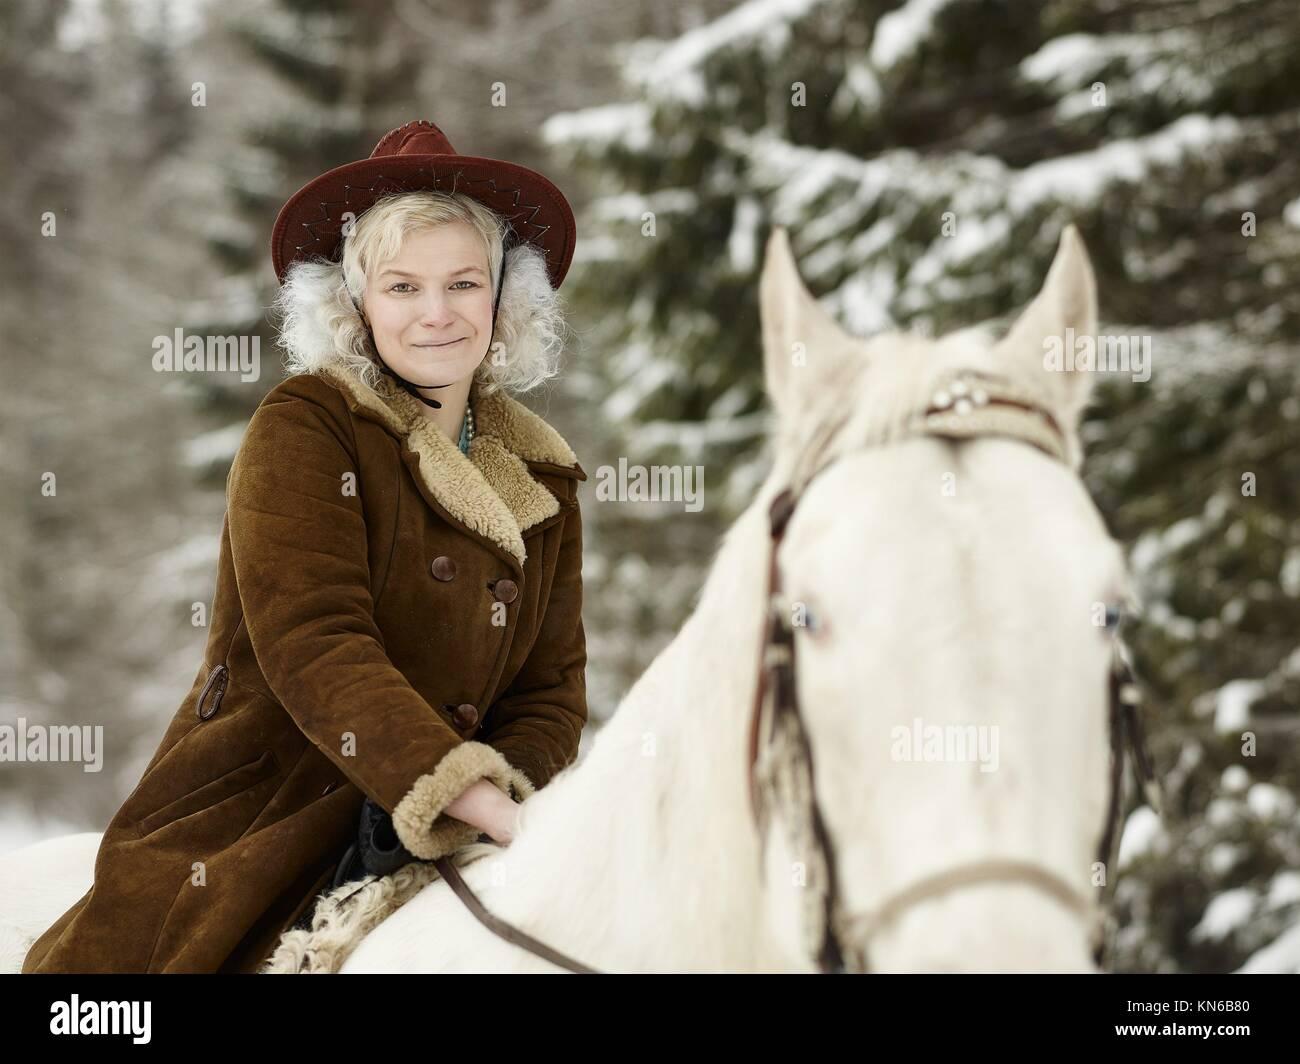 Attractive woman wearing a winter jacket and hat, she riding a white horse and she looks towards the camera. South Stock Photo